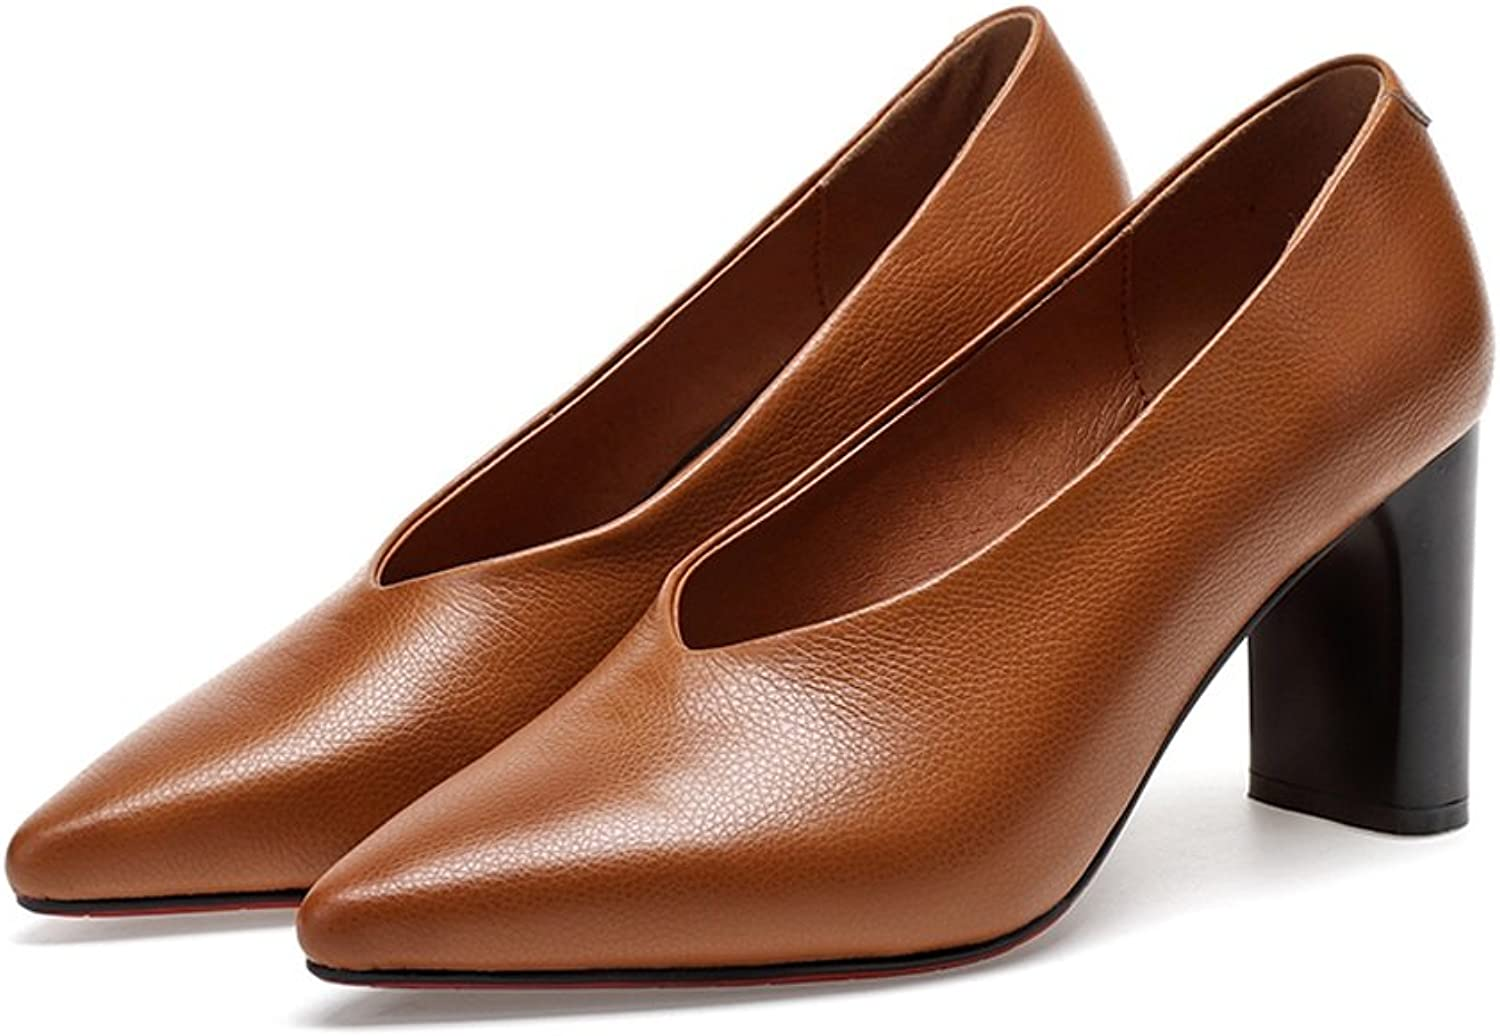 YUBIN Spring Youth Wild Rough with A Single shoes Female Fashion V Mouth Grandma shoes Leather Female shoes Pointed High Heels (color   Brown, Size   36)